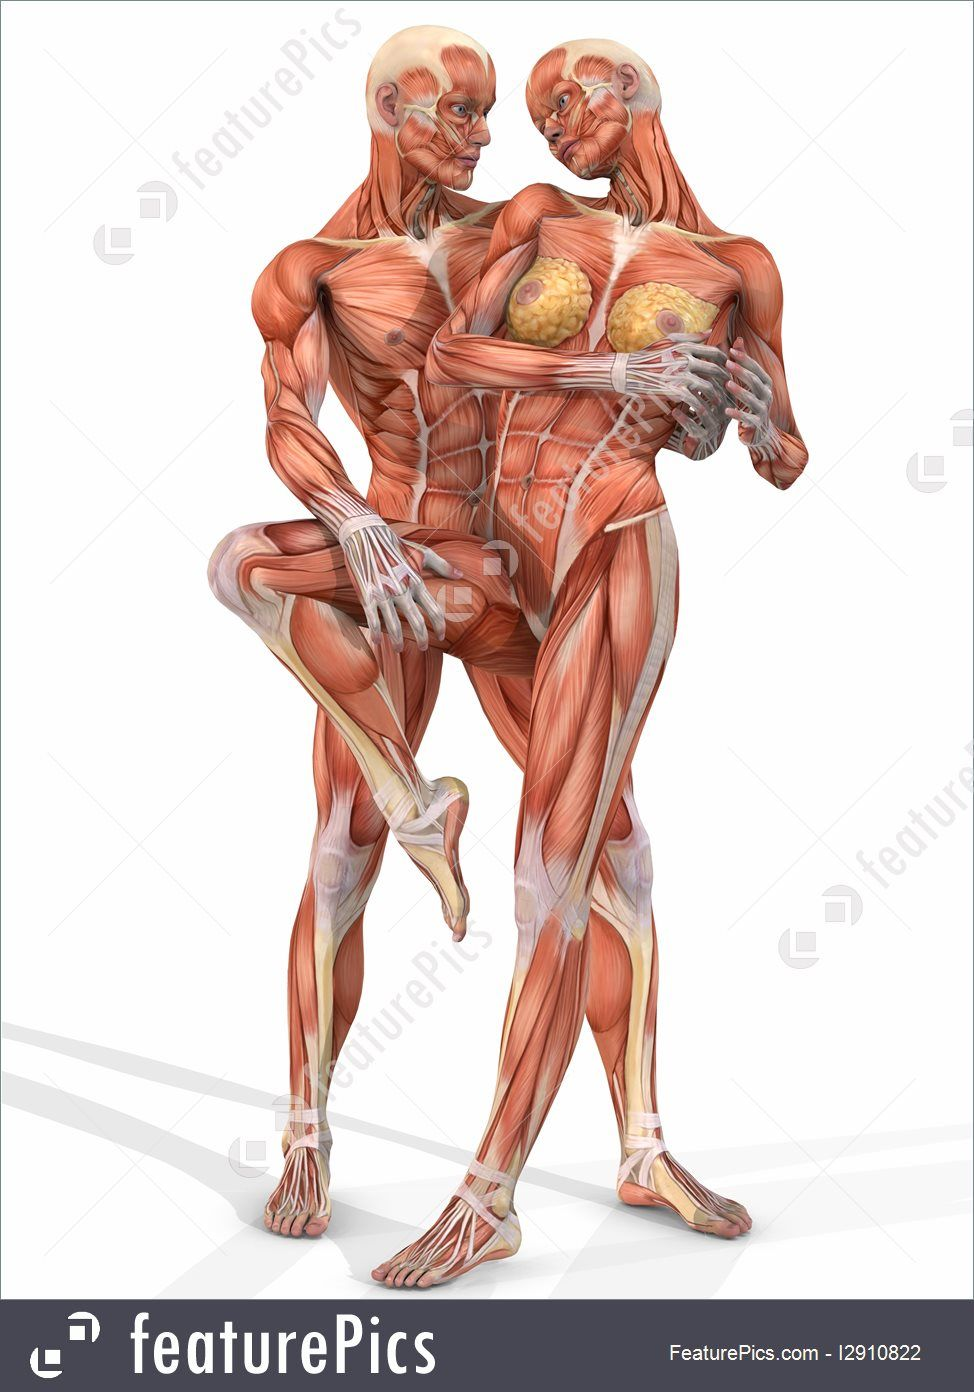 Image result for female anatomy arm up | DIBUJOS A LAPIZ FIGURA ...